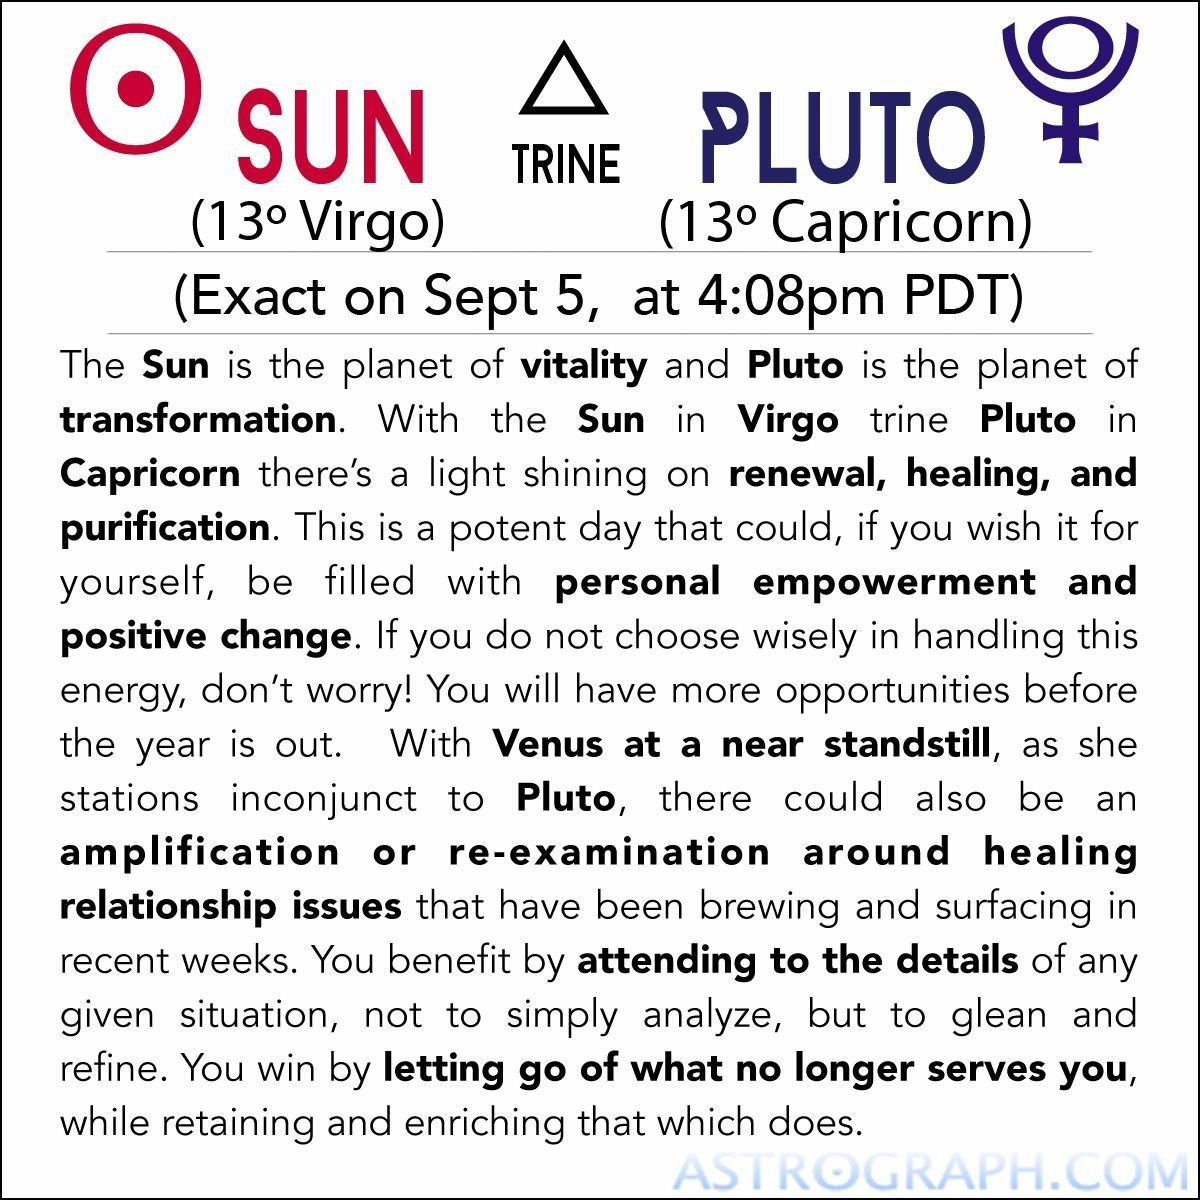 Copy paste for free astrology question httpofferyodhad copy paste for free astrology question httpofferyodha buycottarizona